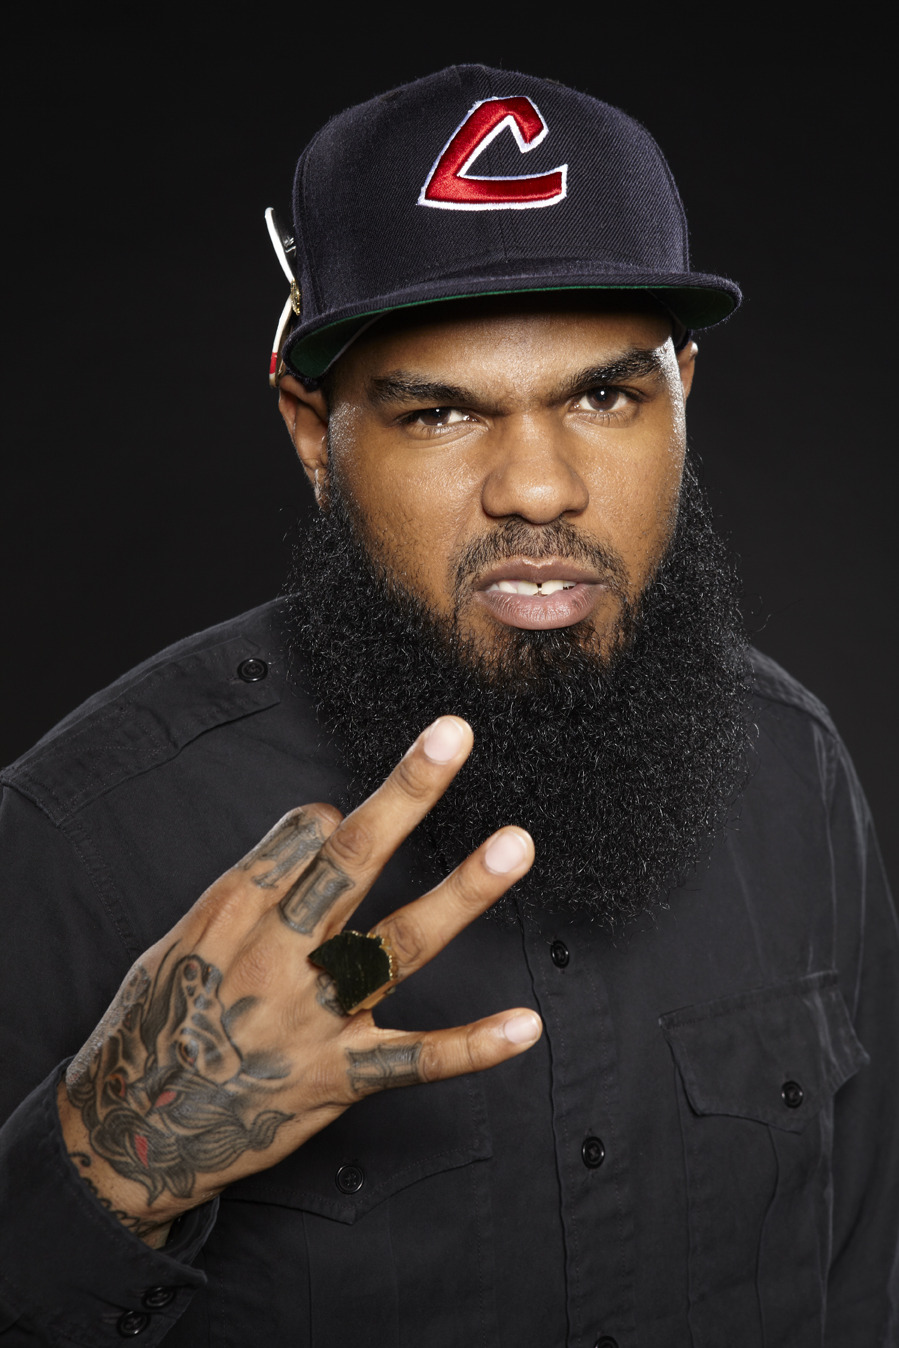 Here's a portrait I recently took of the rap artist Stalley for a project for Warner Bros.